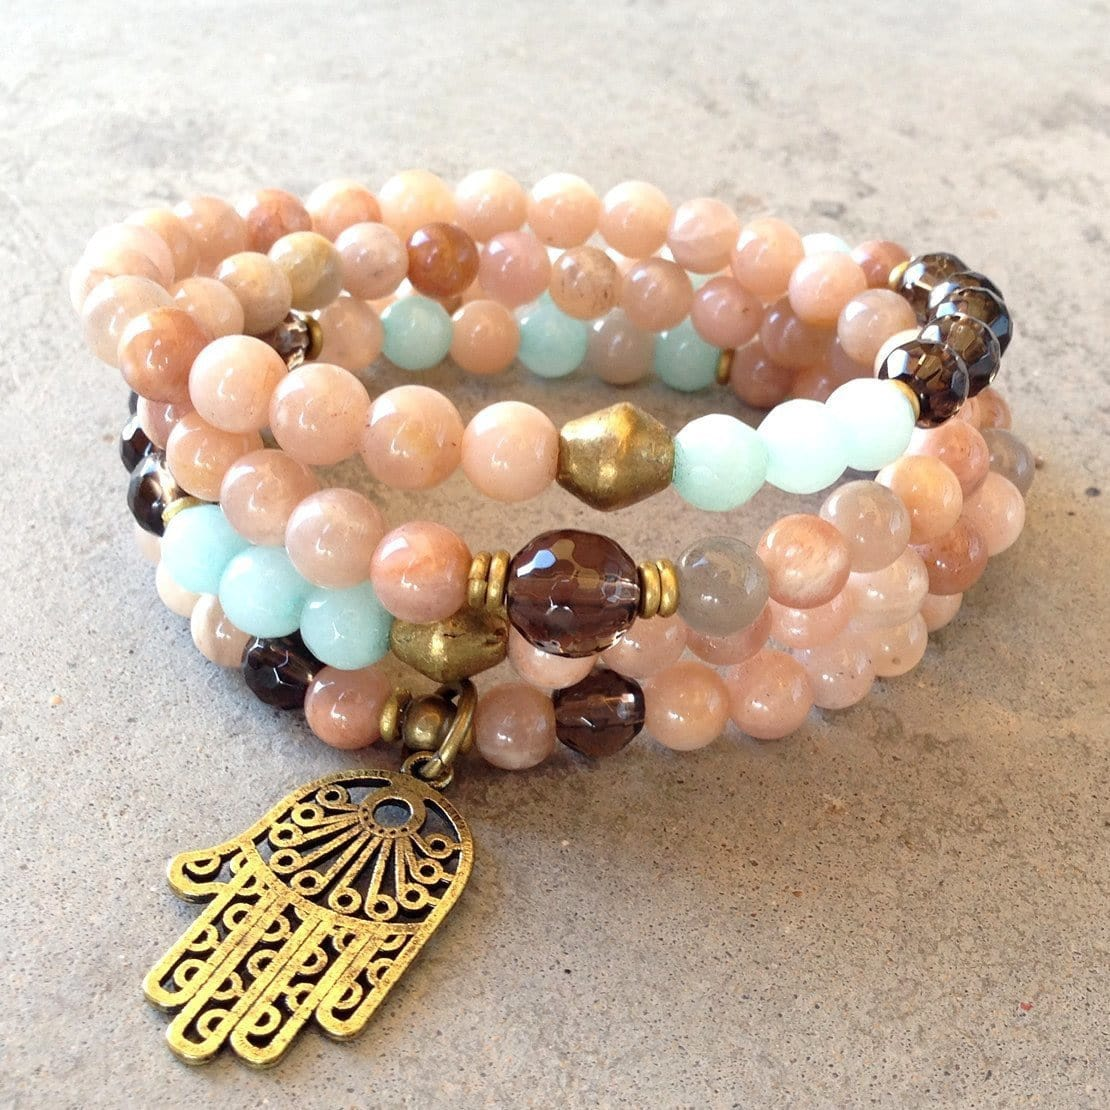 Necklaces - Joy and Positivity, Sunstone and Smoky Quartz 108 Bead Mala Necklace Or Bracelet